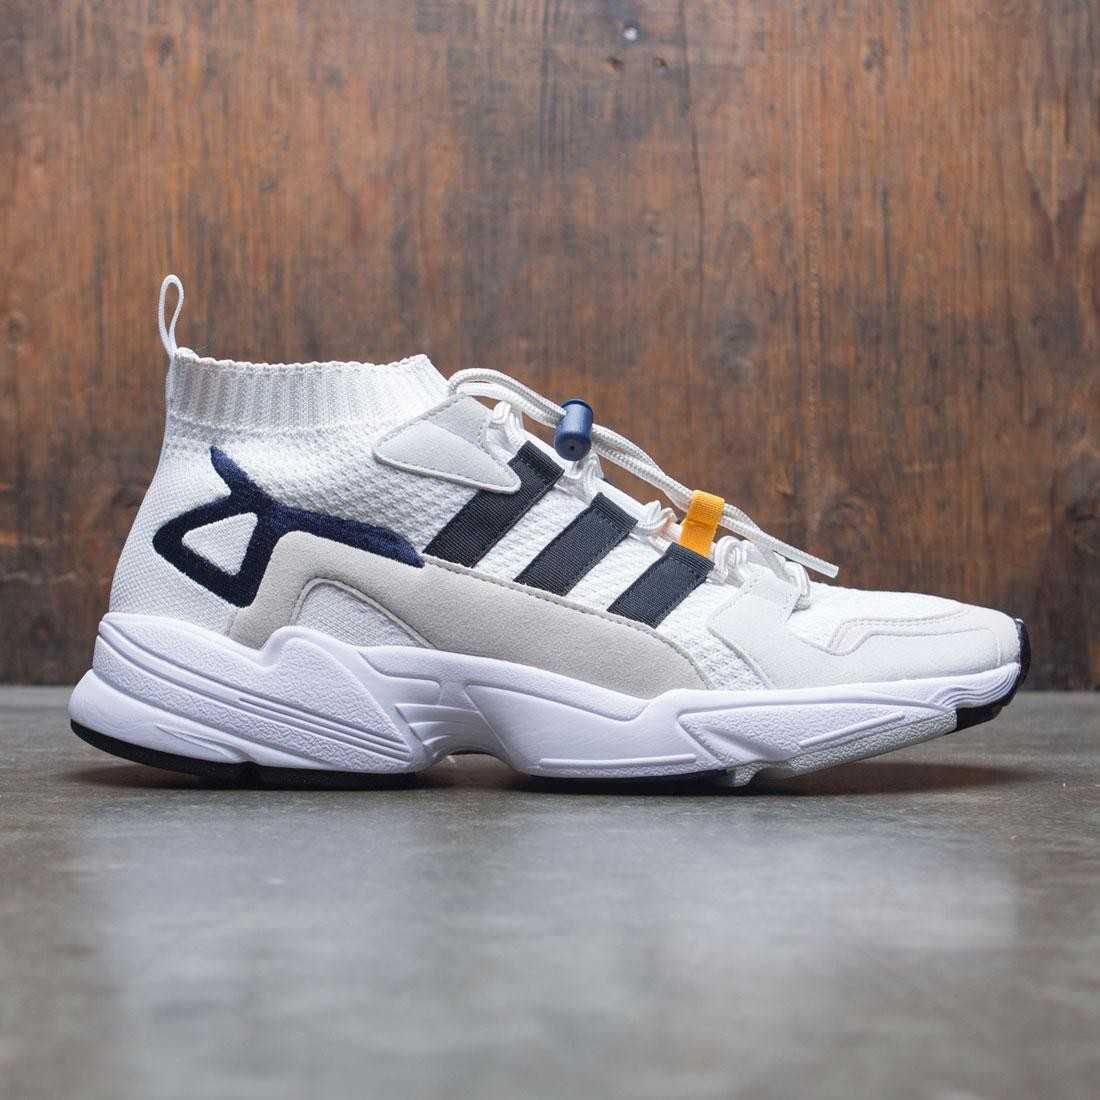 new style 6c2bc ee7f4 Adidas Consortium Men Falcon Workshop white black blue